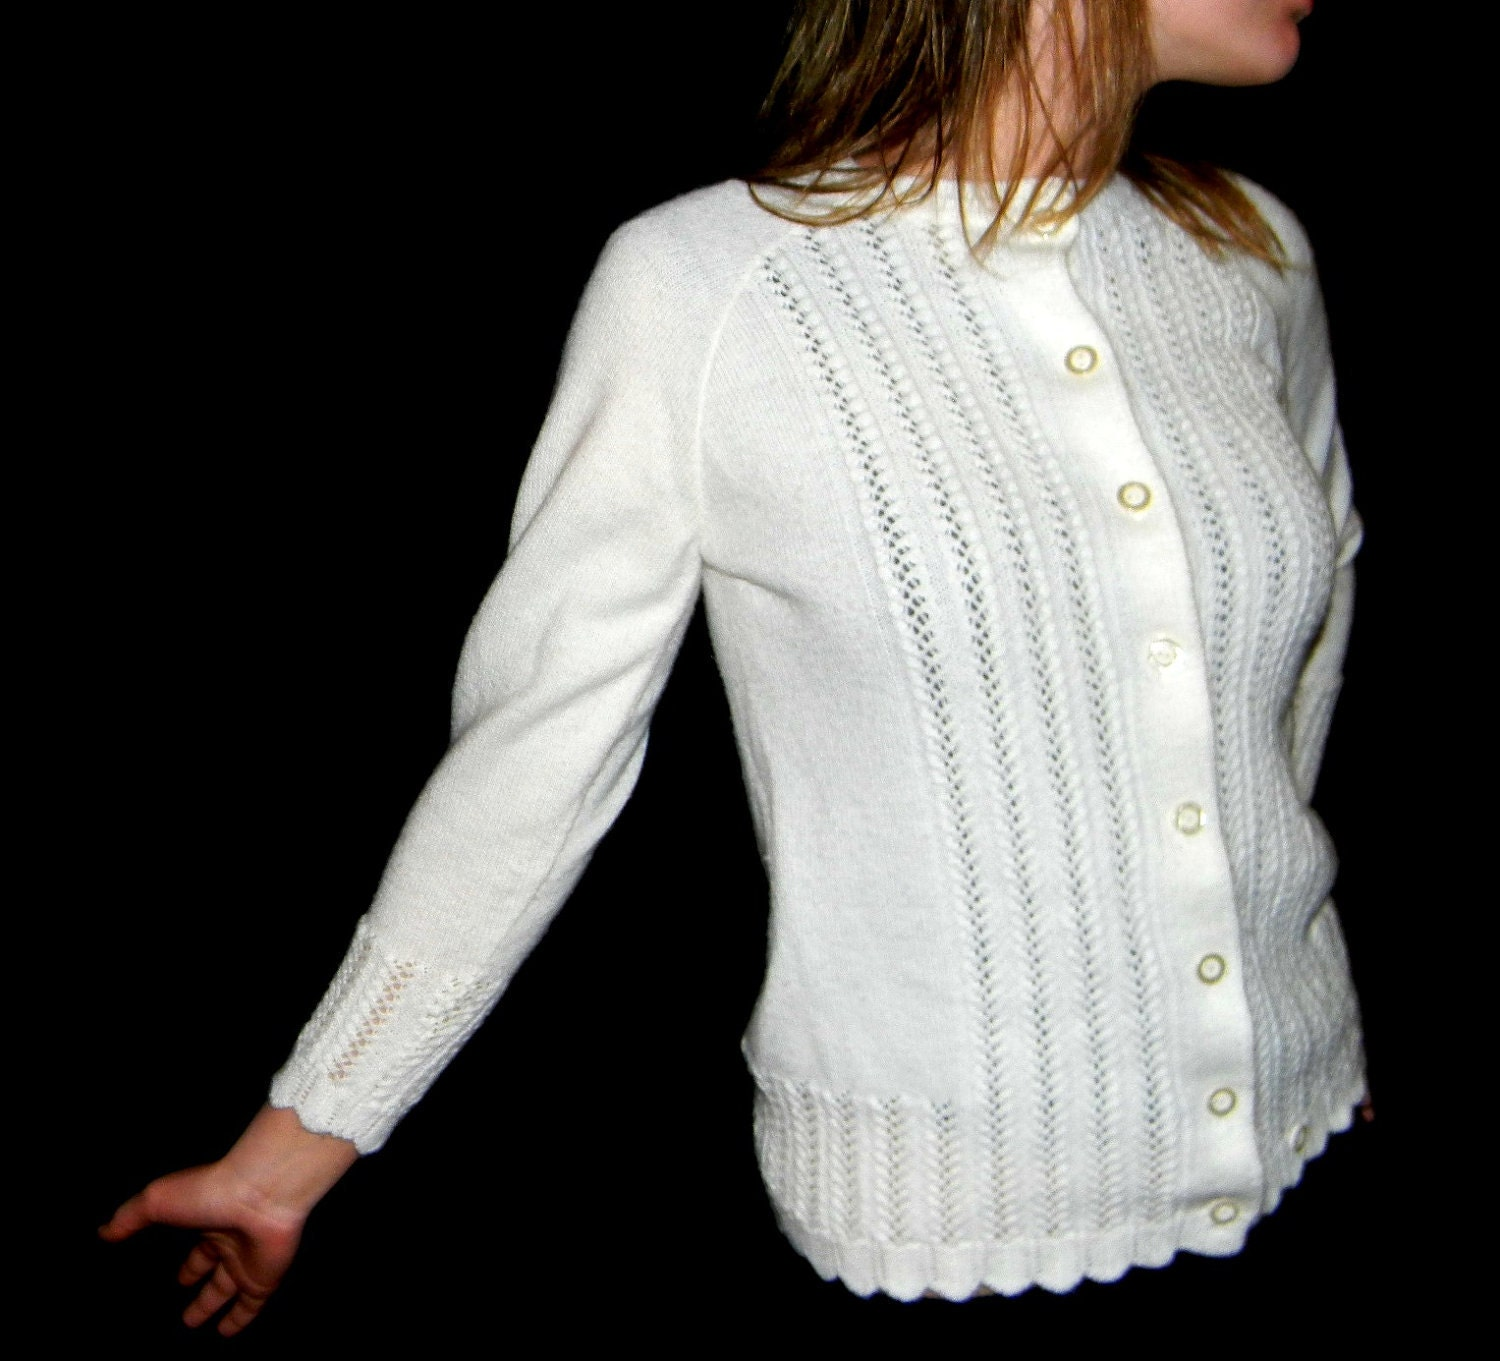 60s Vogue cardigan. White lace sweater top. Mad Men fashion.